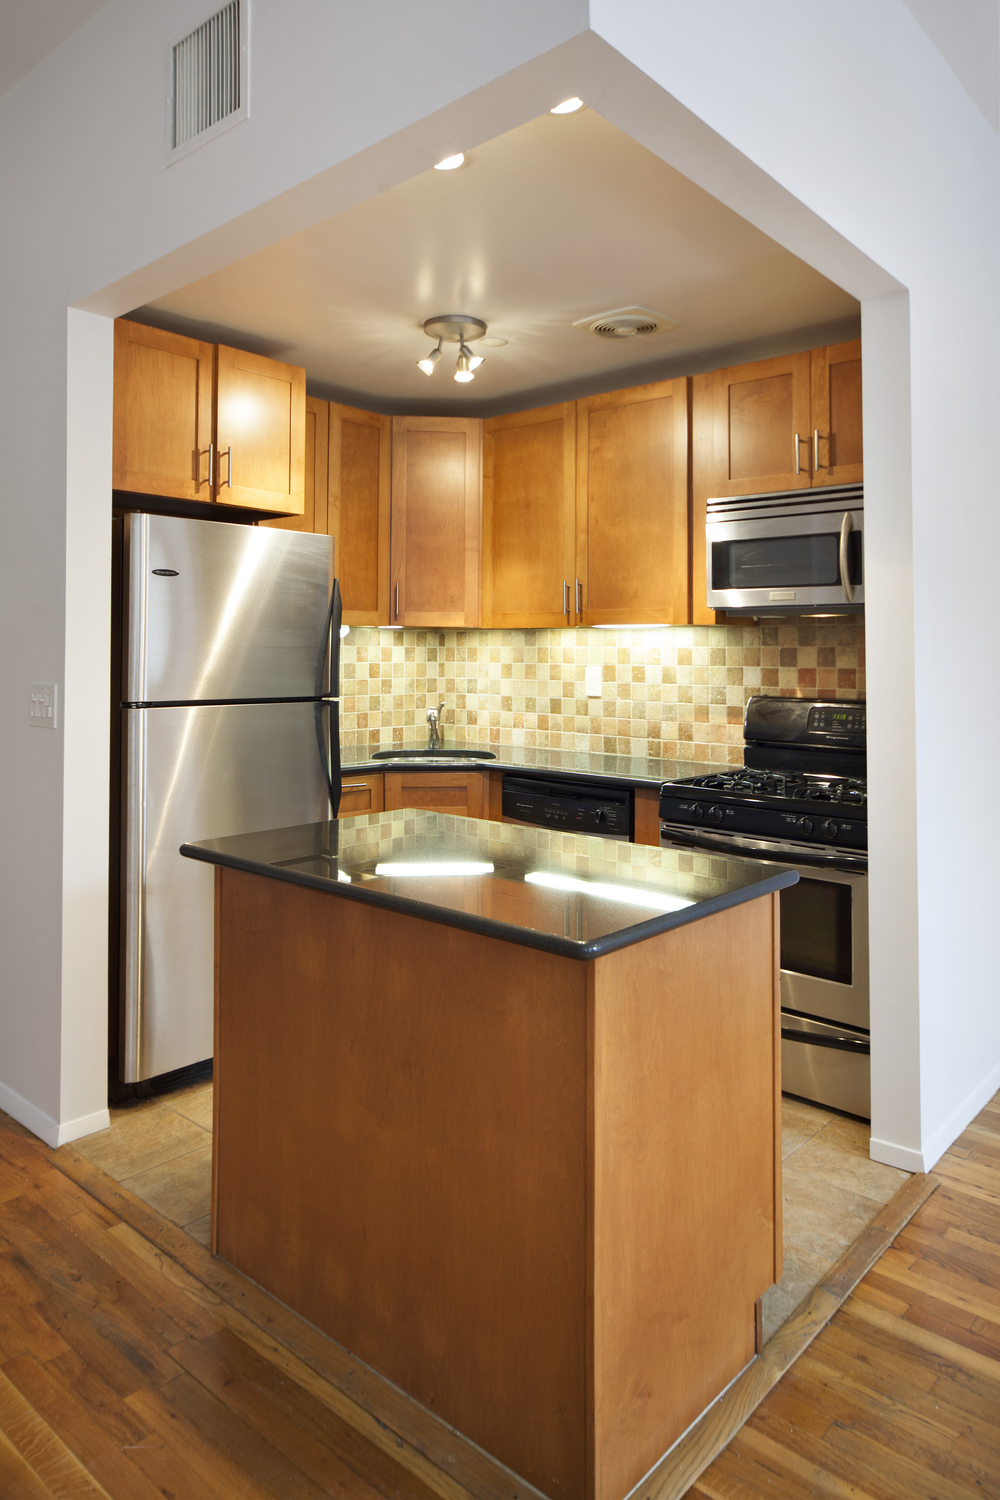 560StateSt-10C-KITCHEN.jpg